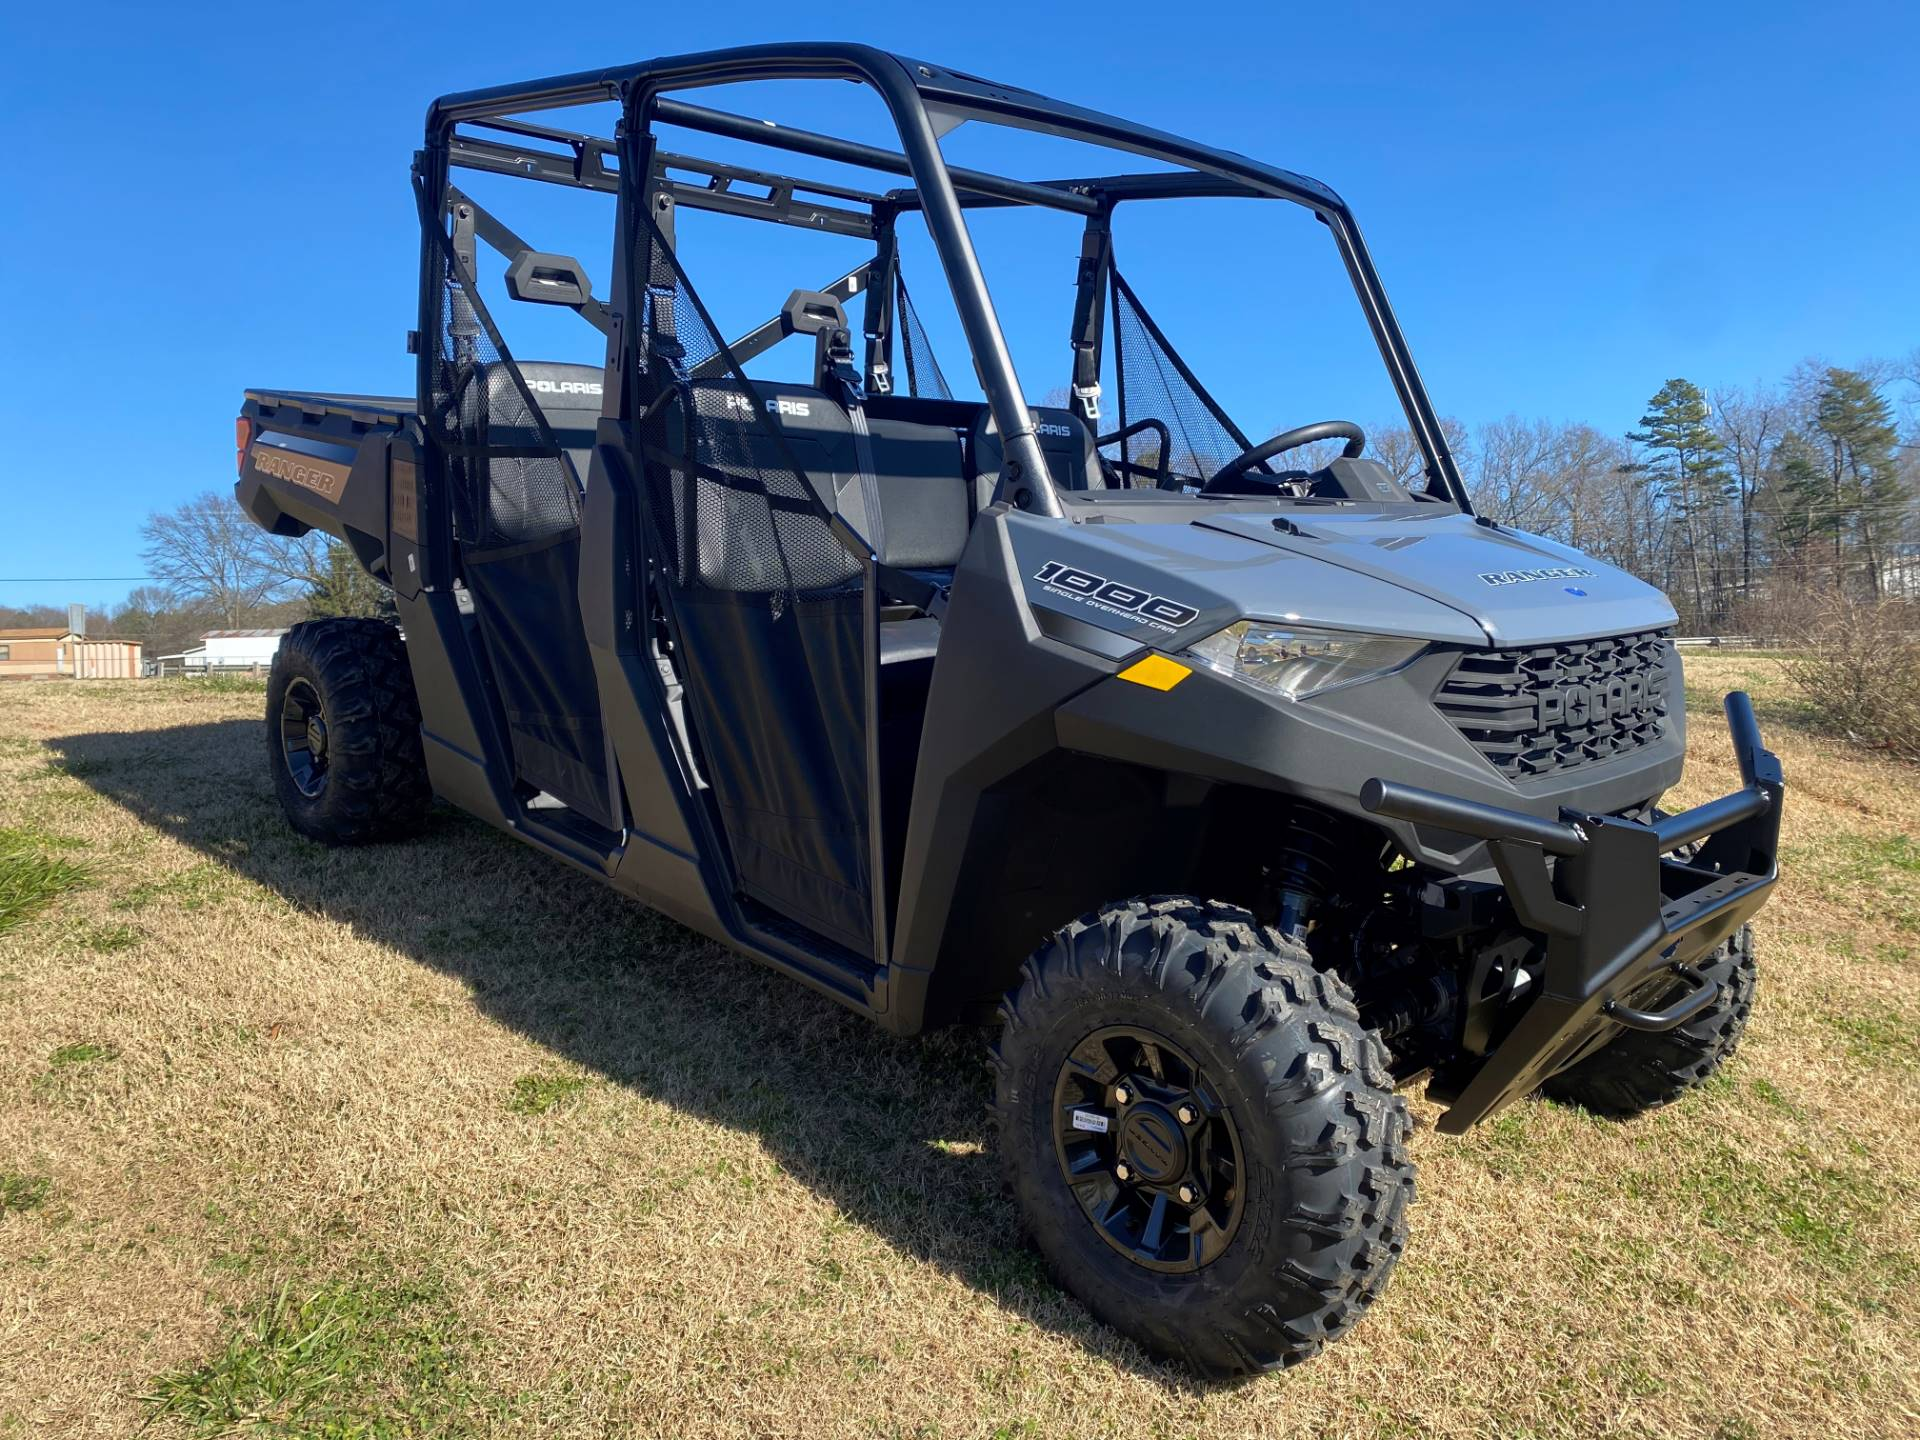 2021 Polaris Ranger Crew 1000 Premium in Greer, South Carolina - Photo 12